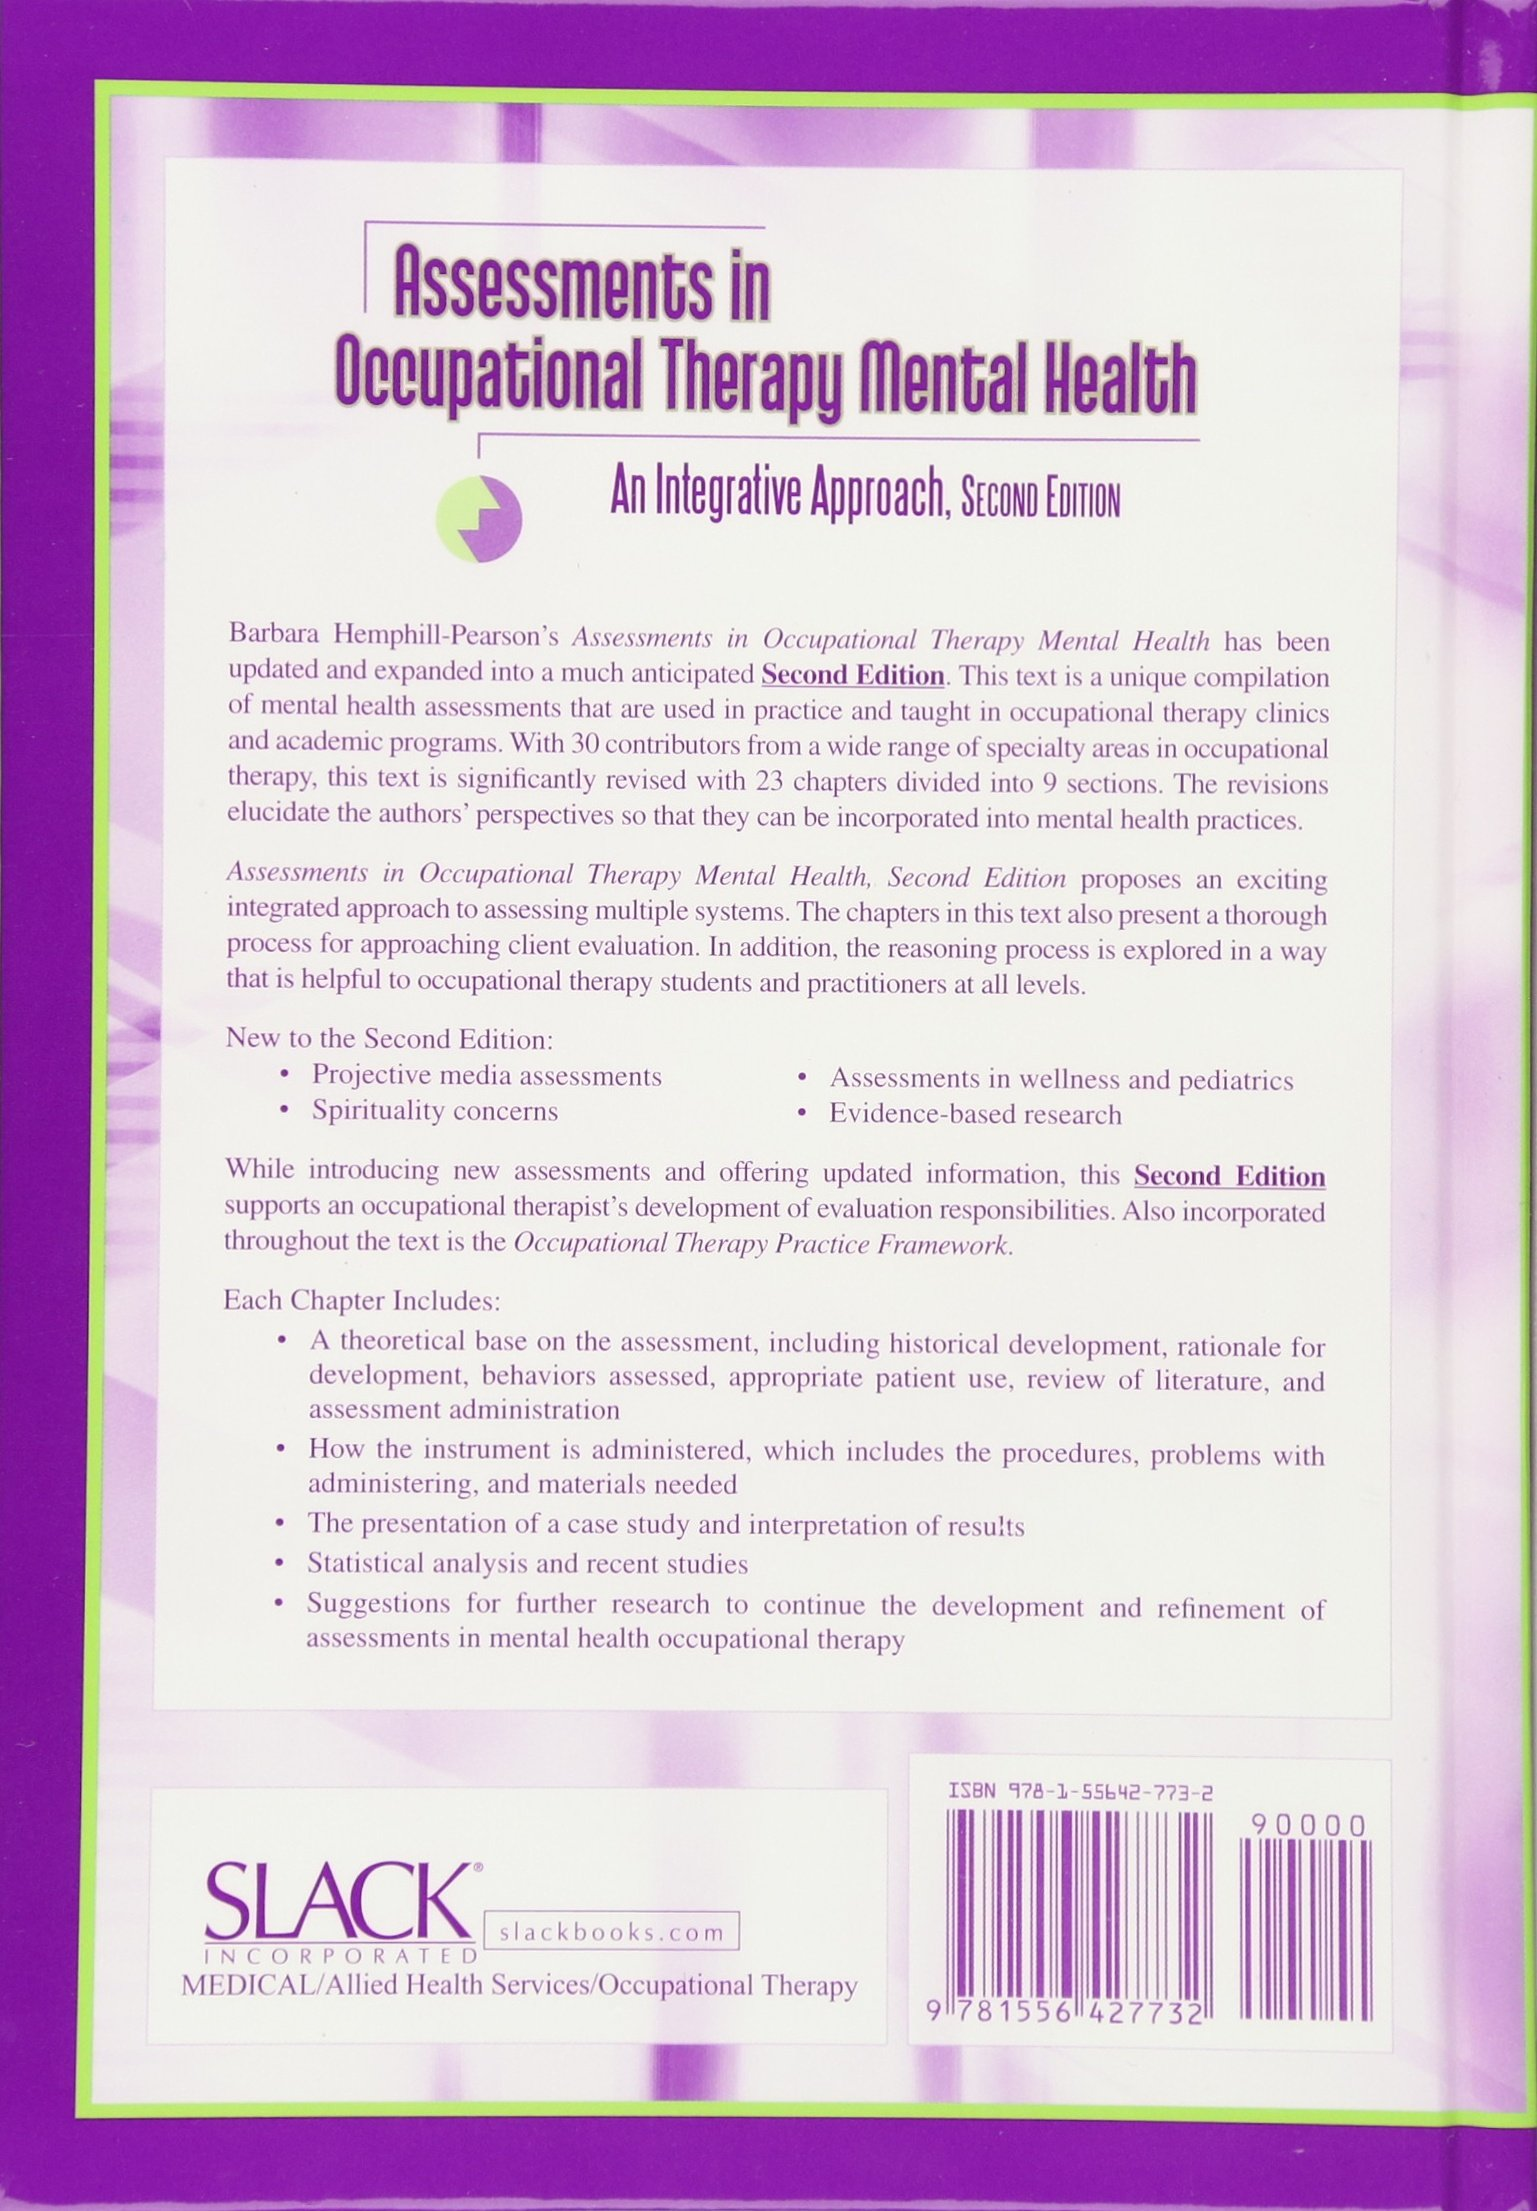 Assessments In Occupational Therapy Mental Health An Integrative Approach Amazon Co Uk Barbara J Hemphill Pearson 9781556427732 Books